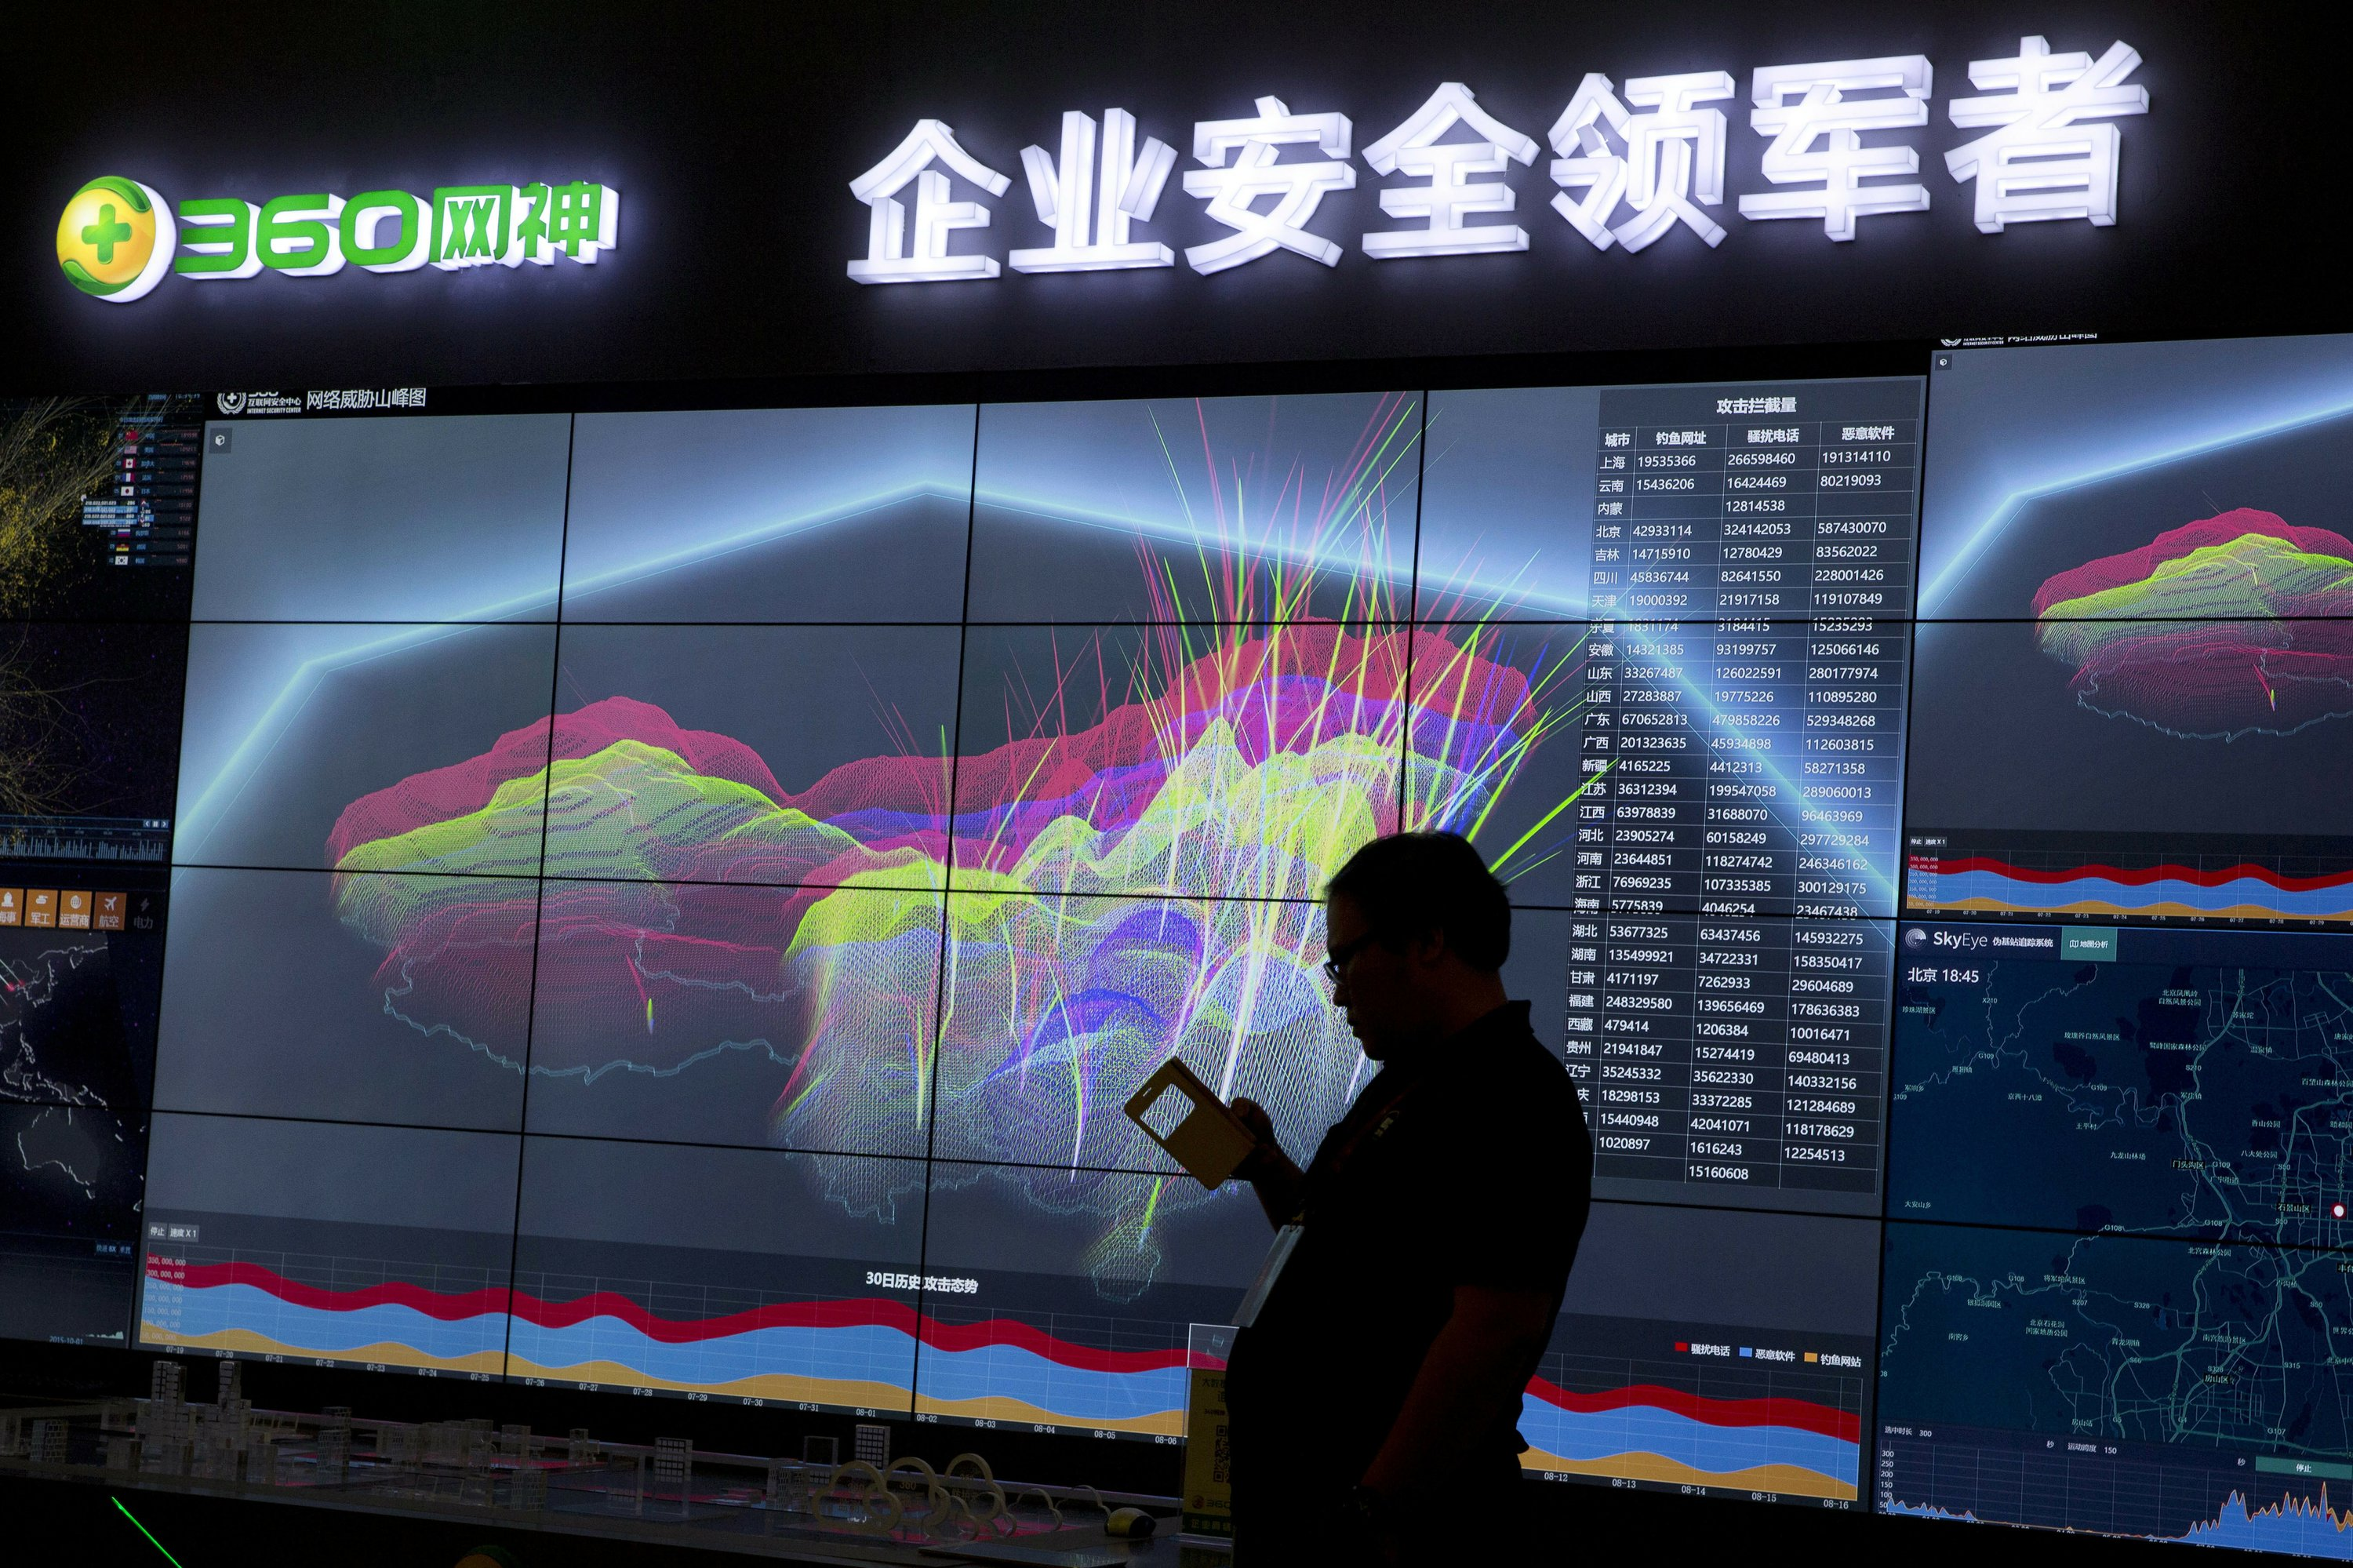 Chinese firm says it did all it could ahead of cyberattack